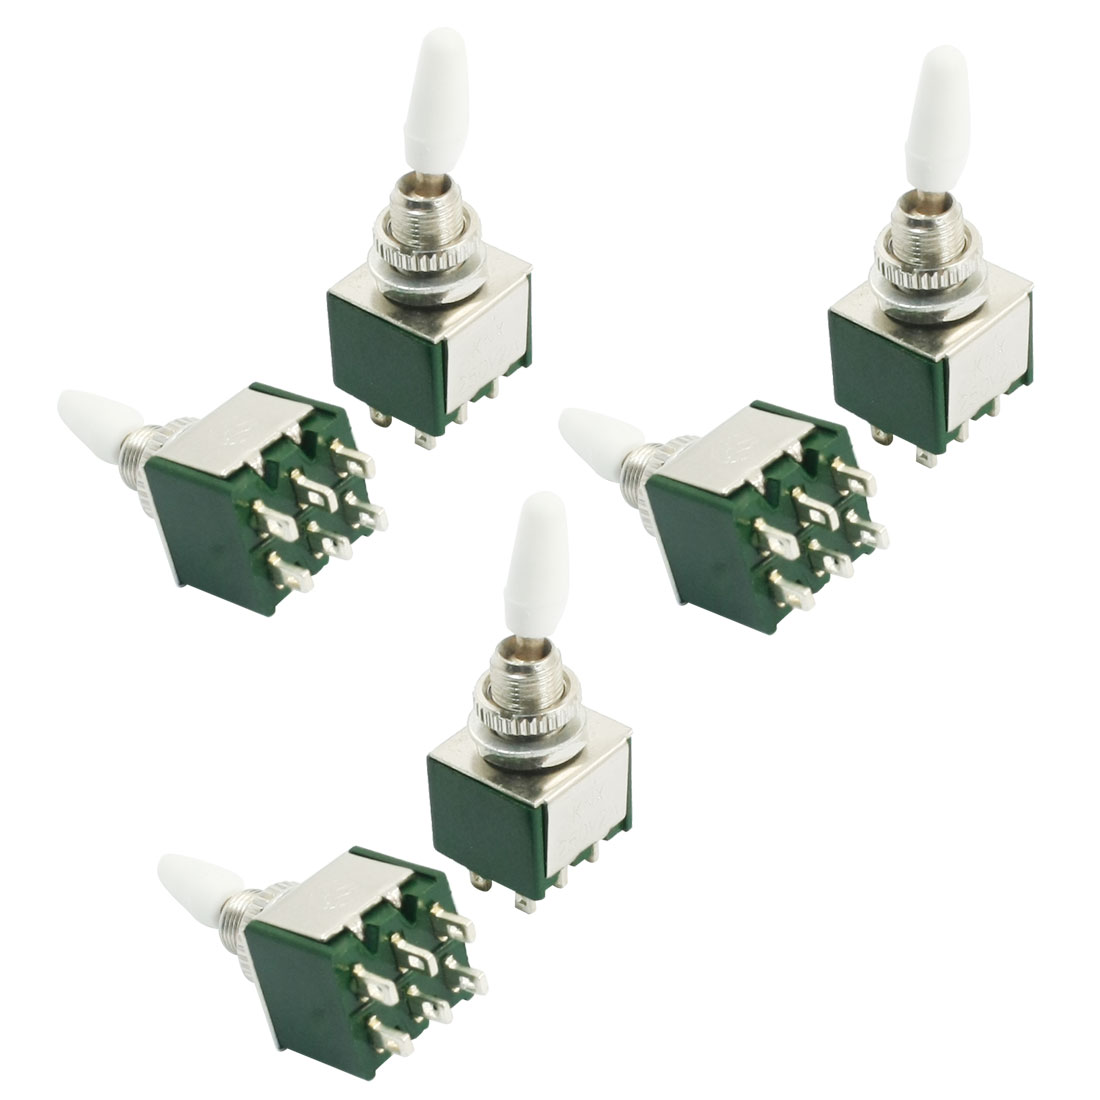 AC 250V 2A 2 Positions DPDT Latching Electric Toggle Switch Green 6pcs